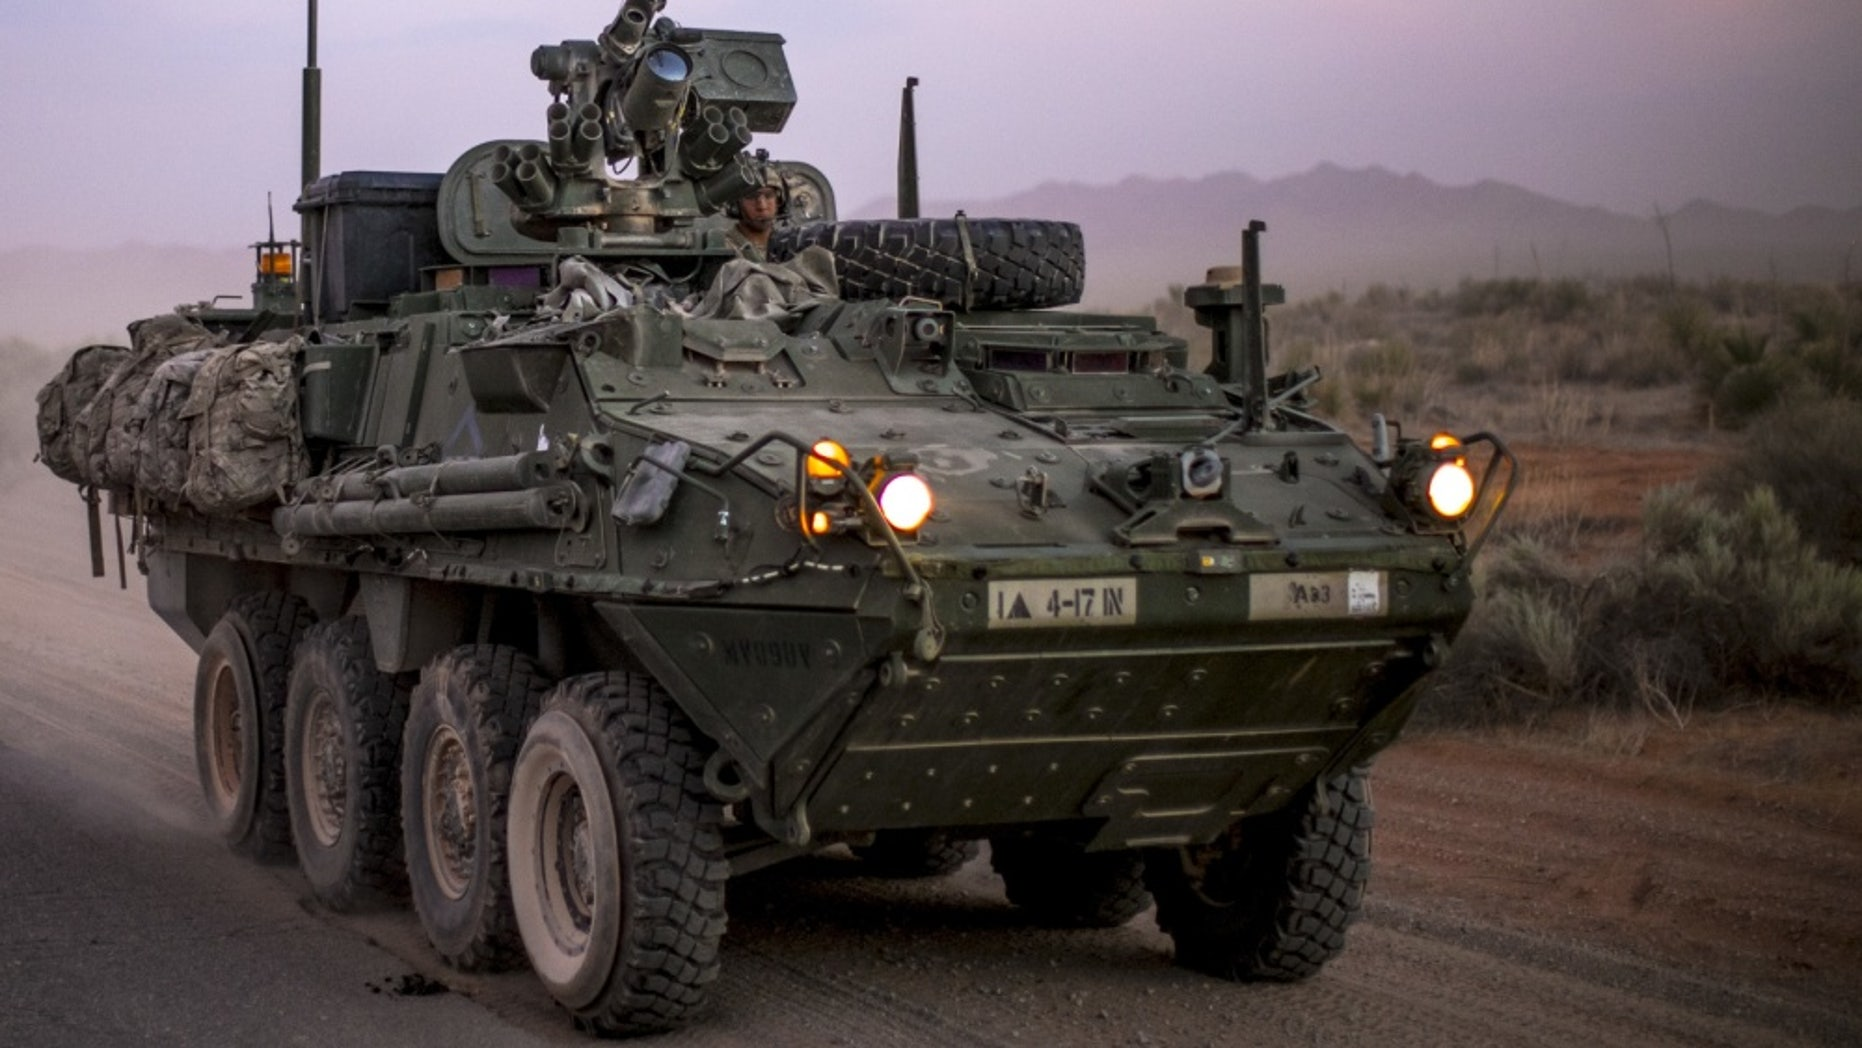 File photo - Stryker assigned to 1st Brigade Combat Team, 4-17 Infantry Battalion passed the Combat Aviation Brigade's convoy on the way to Division's wide Iron Focus field exercise. (Photo by Spc. Tin P. Vuong, U.S. Army)